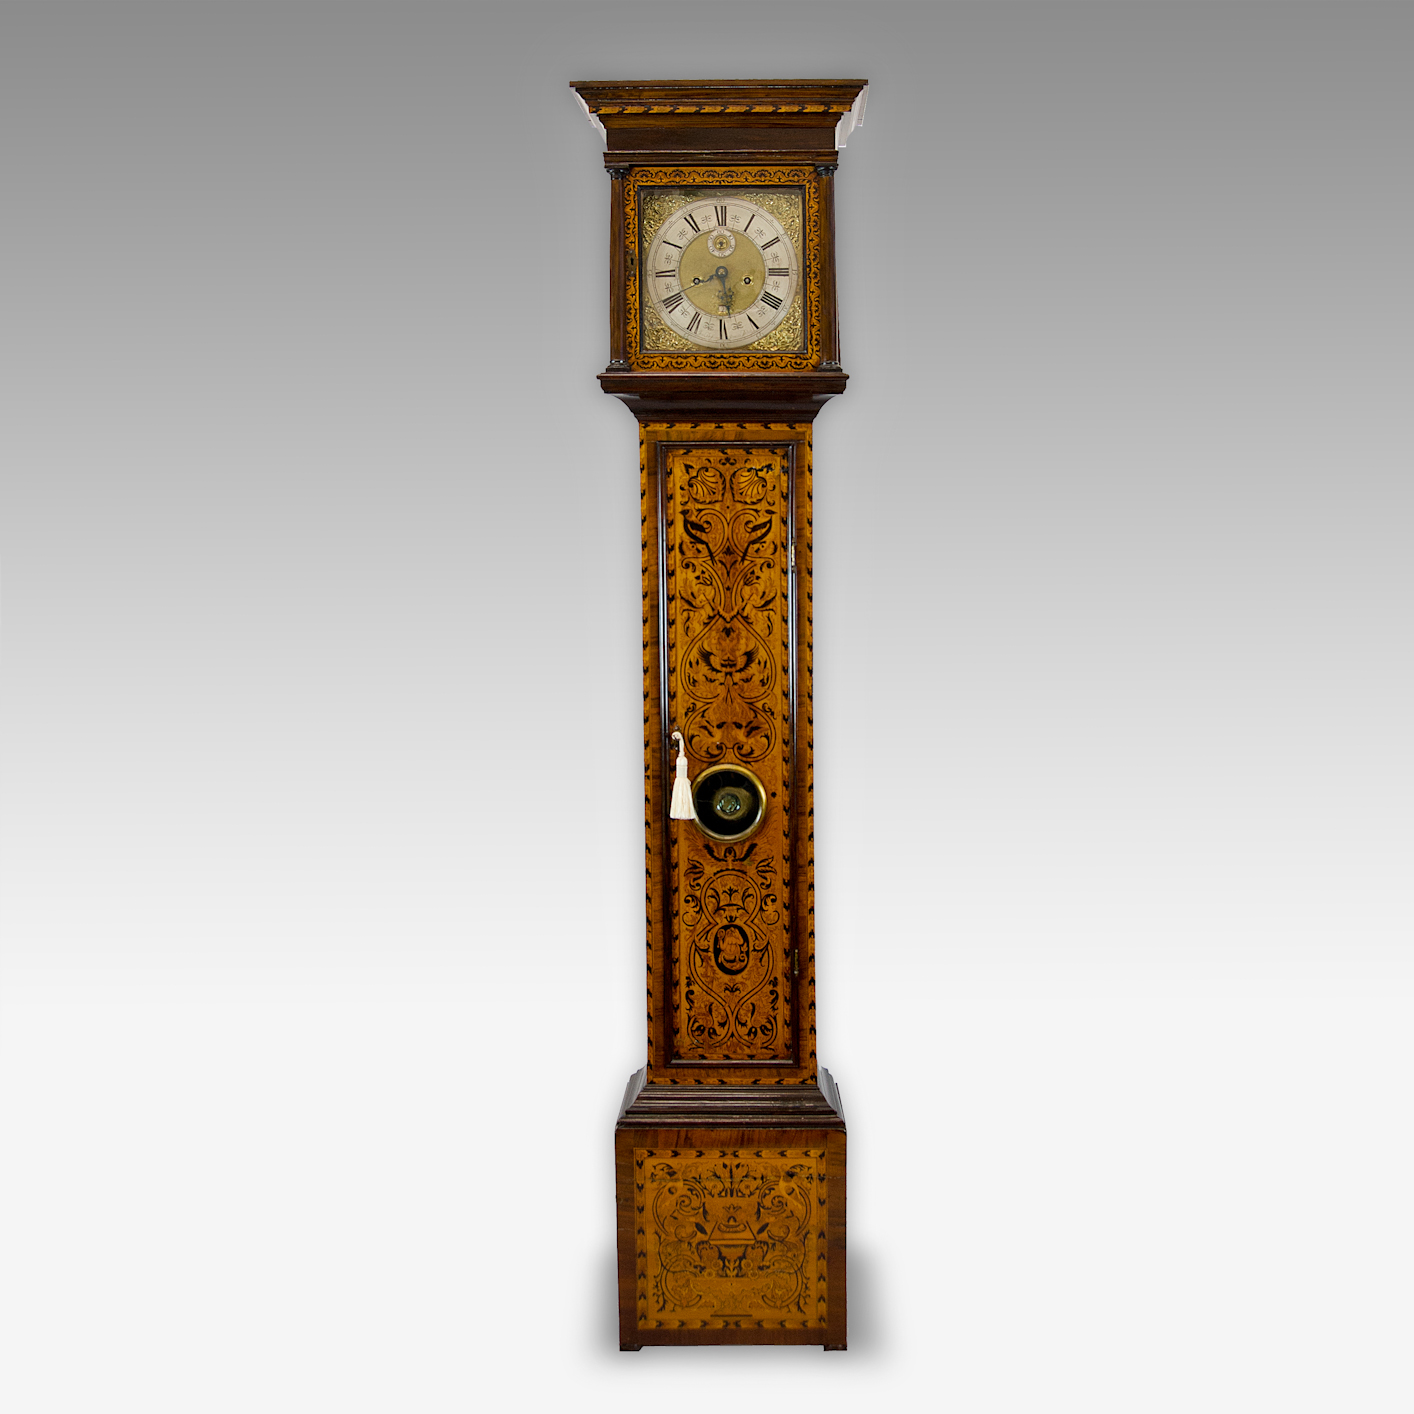 History of the Long Case Clock